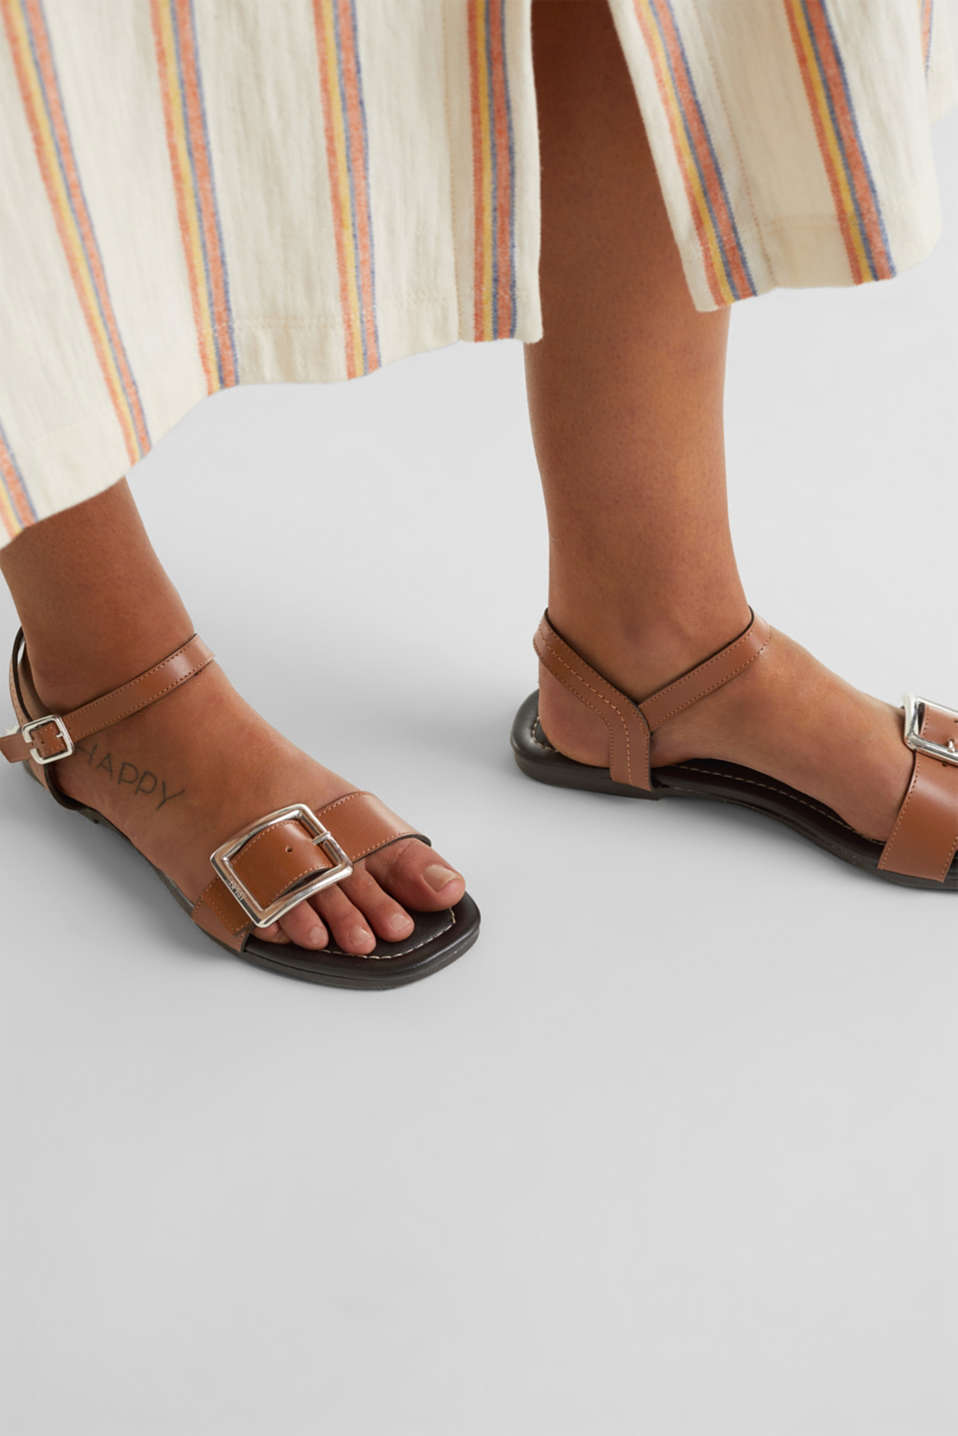 Leather sandals with buckles, CARAMEL, detail image number 3